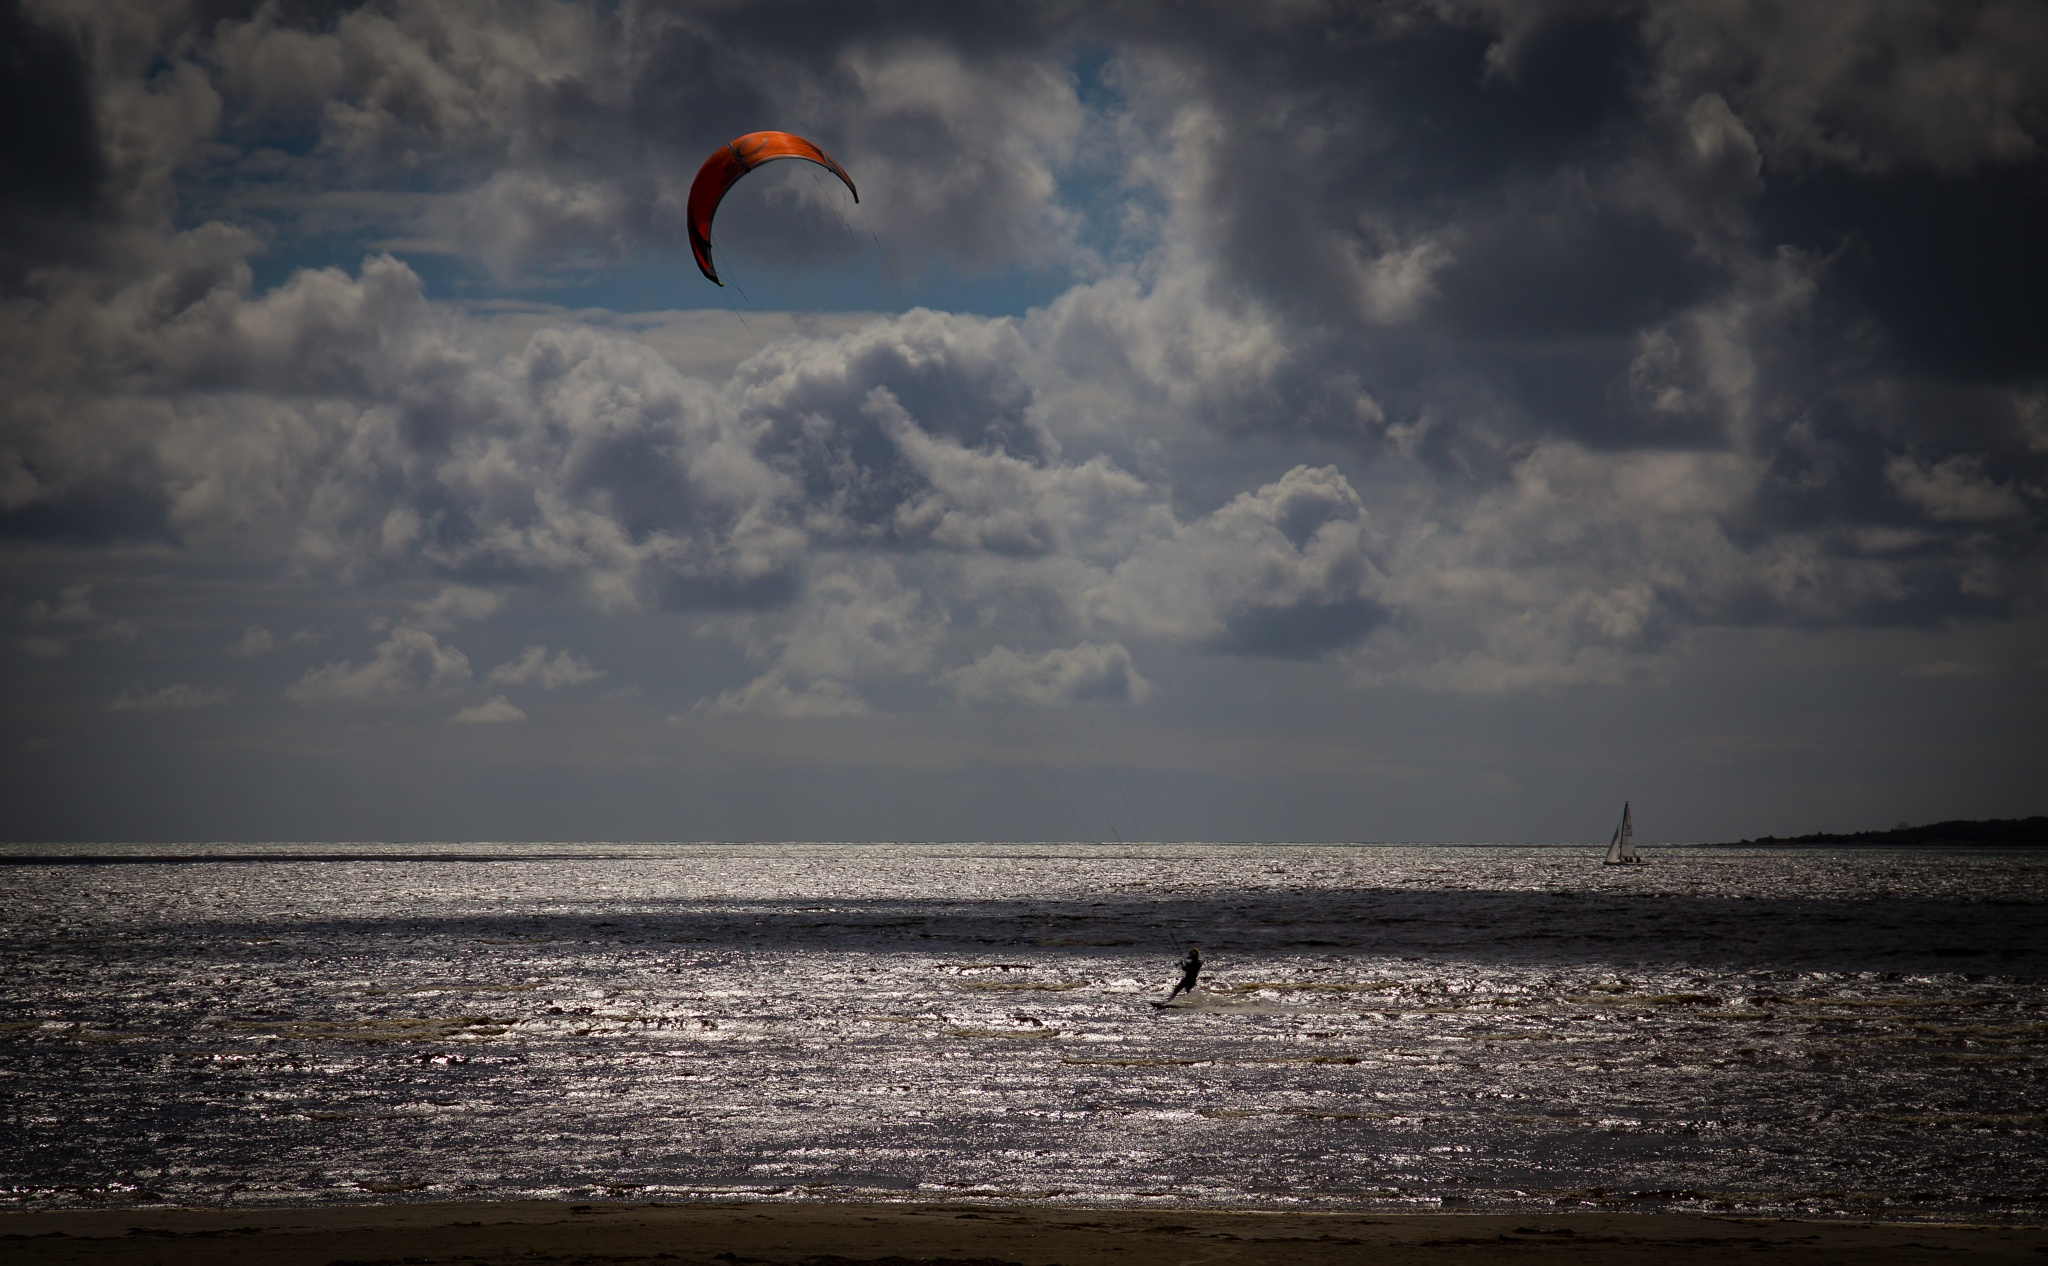 Kite Surfing by André Soerensen